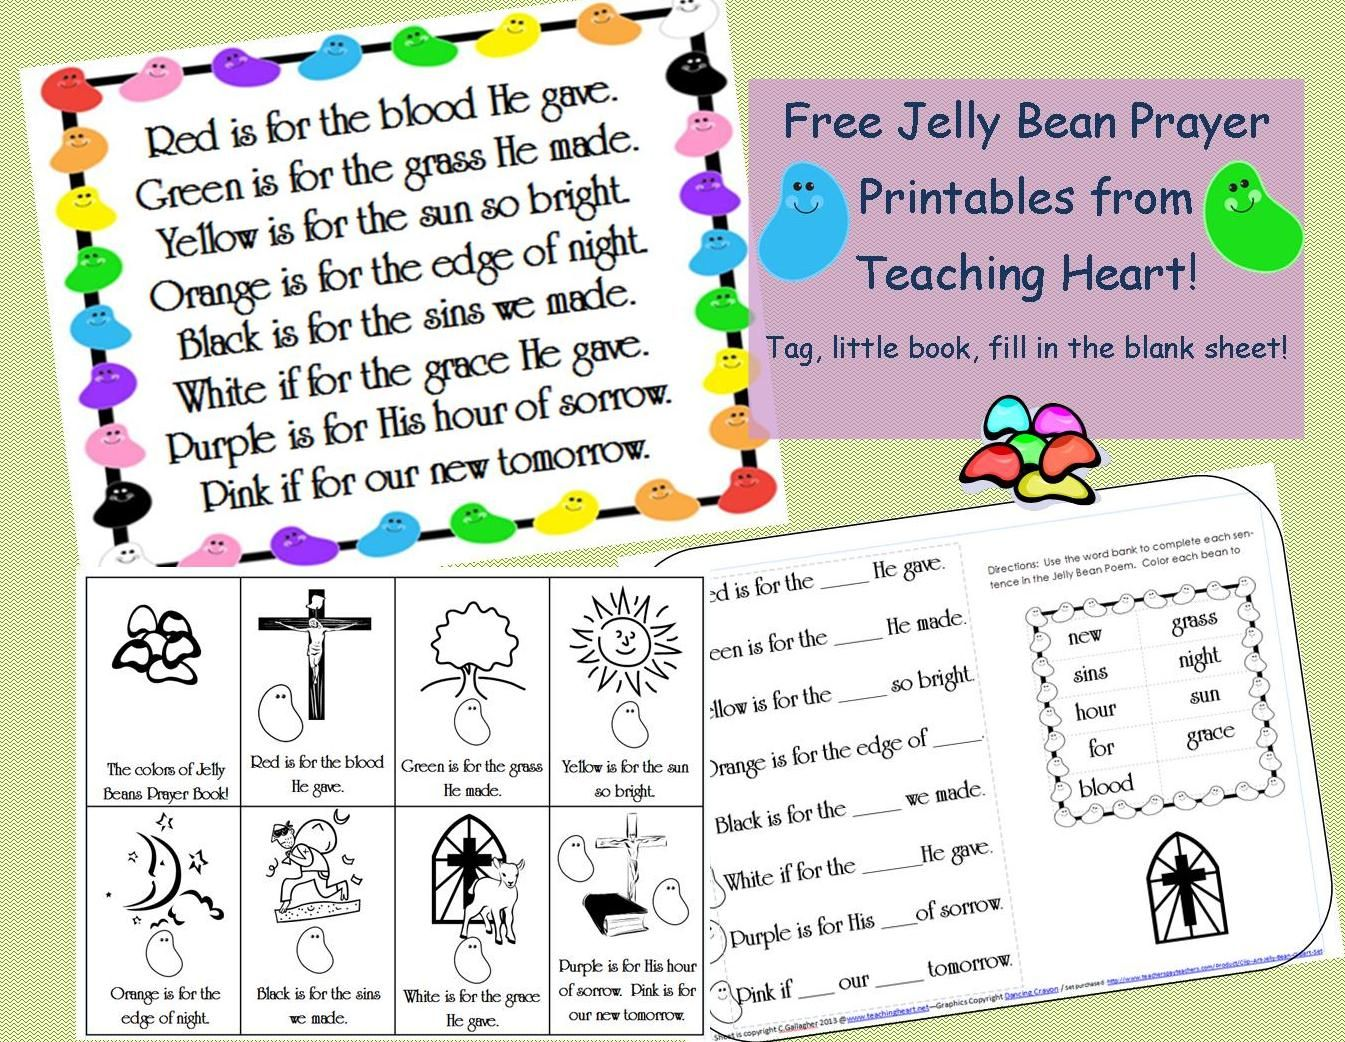 Free Jelly Bean Prayer Printables Teaching Heart